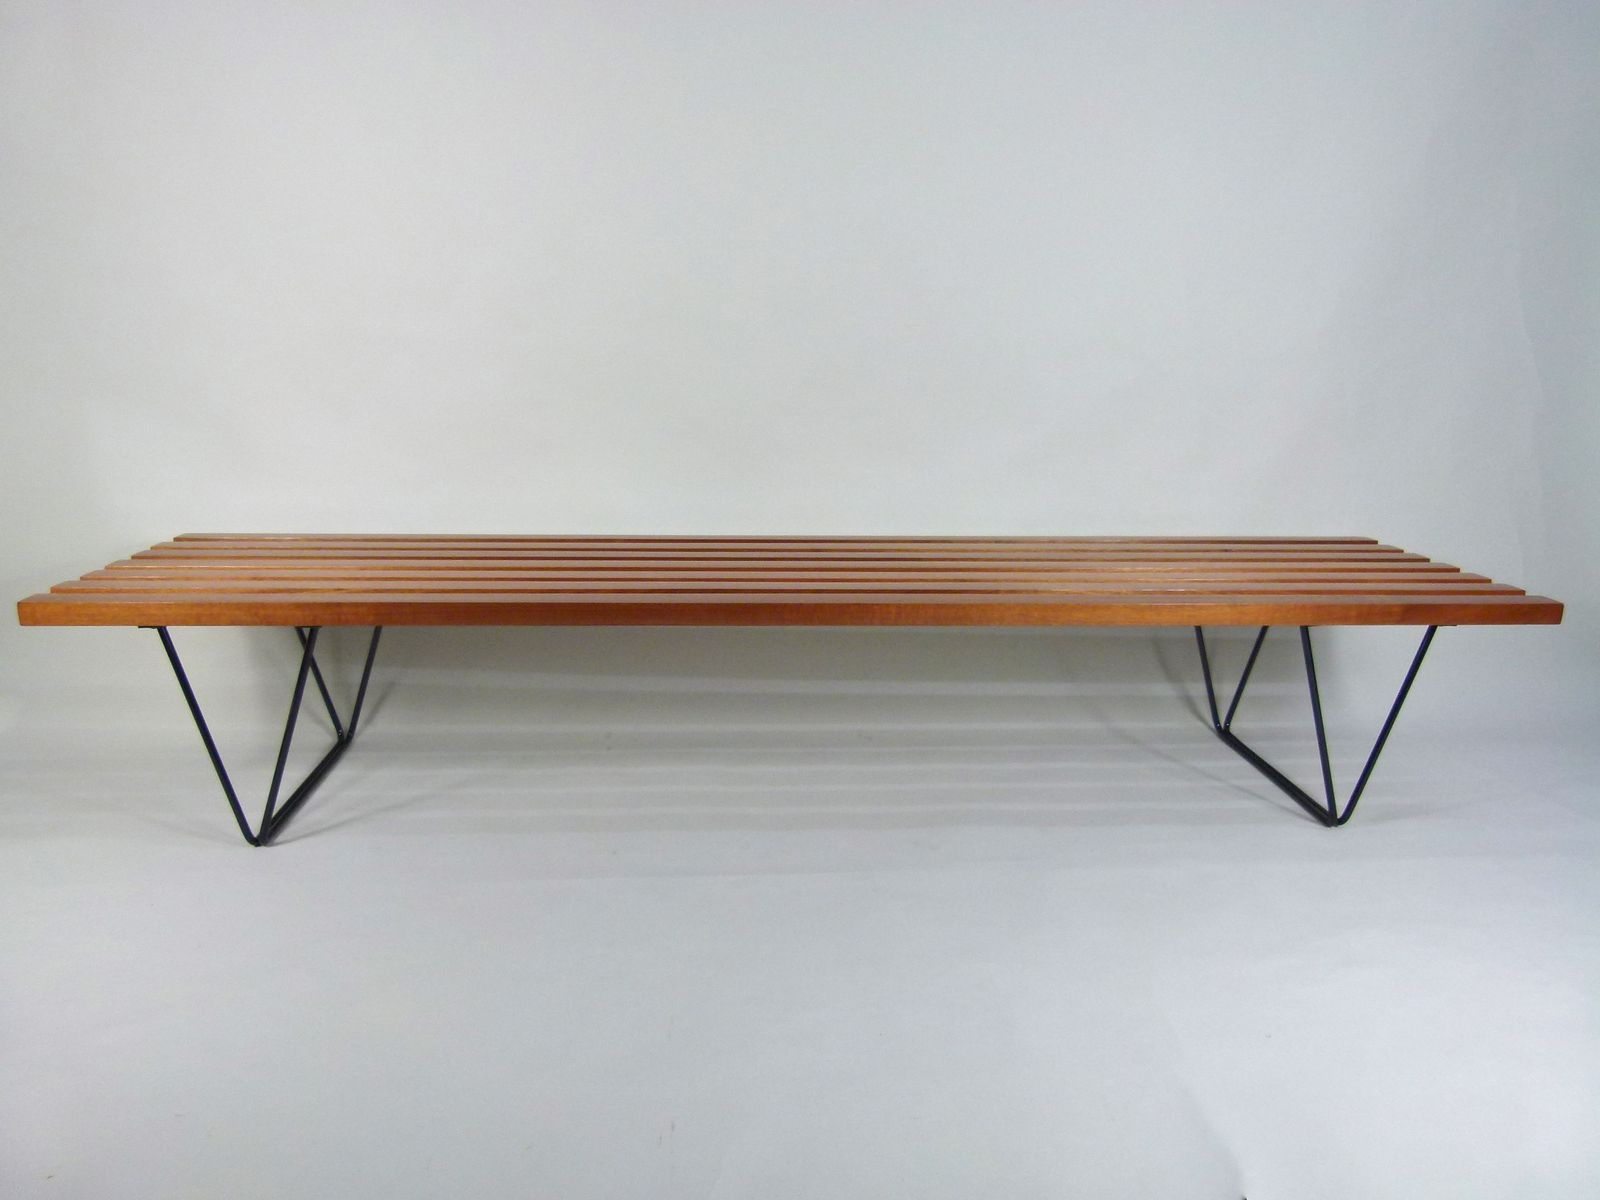 Vintage British Bench By Robin Day For Hille For Sale At Pamono